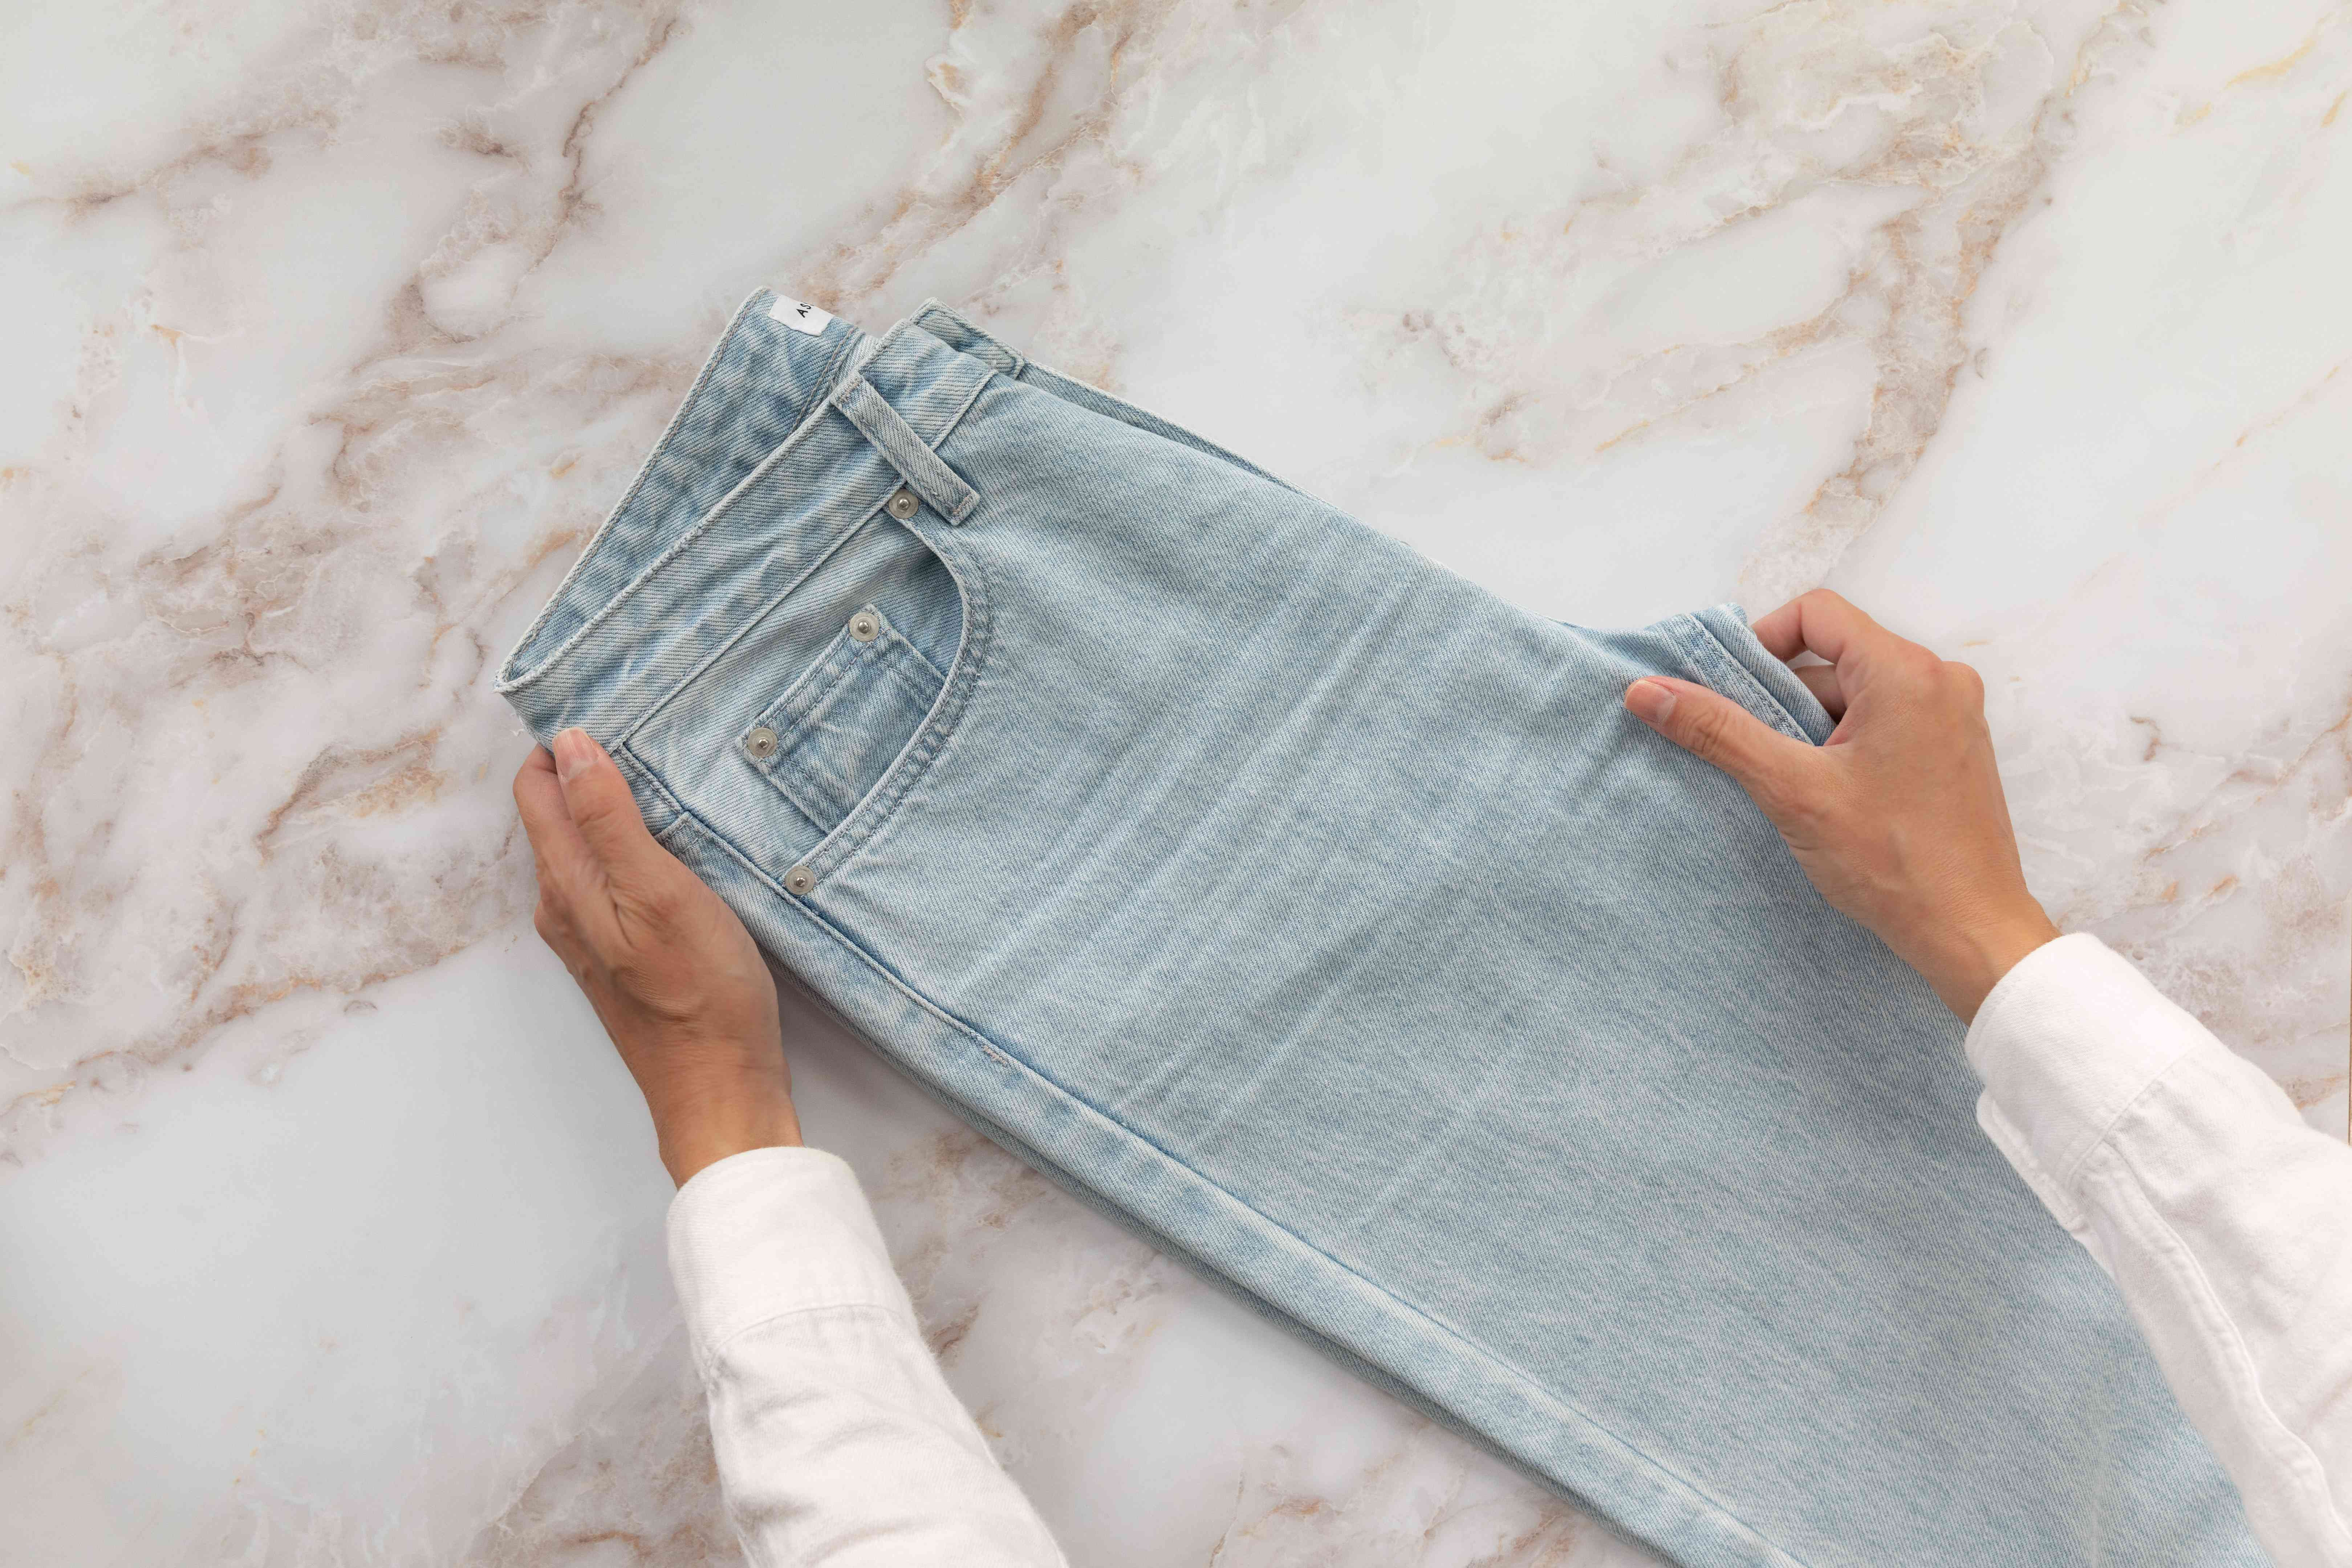 Jeans without crease folded in half vertically